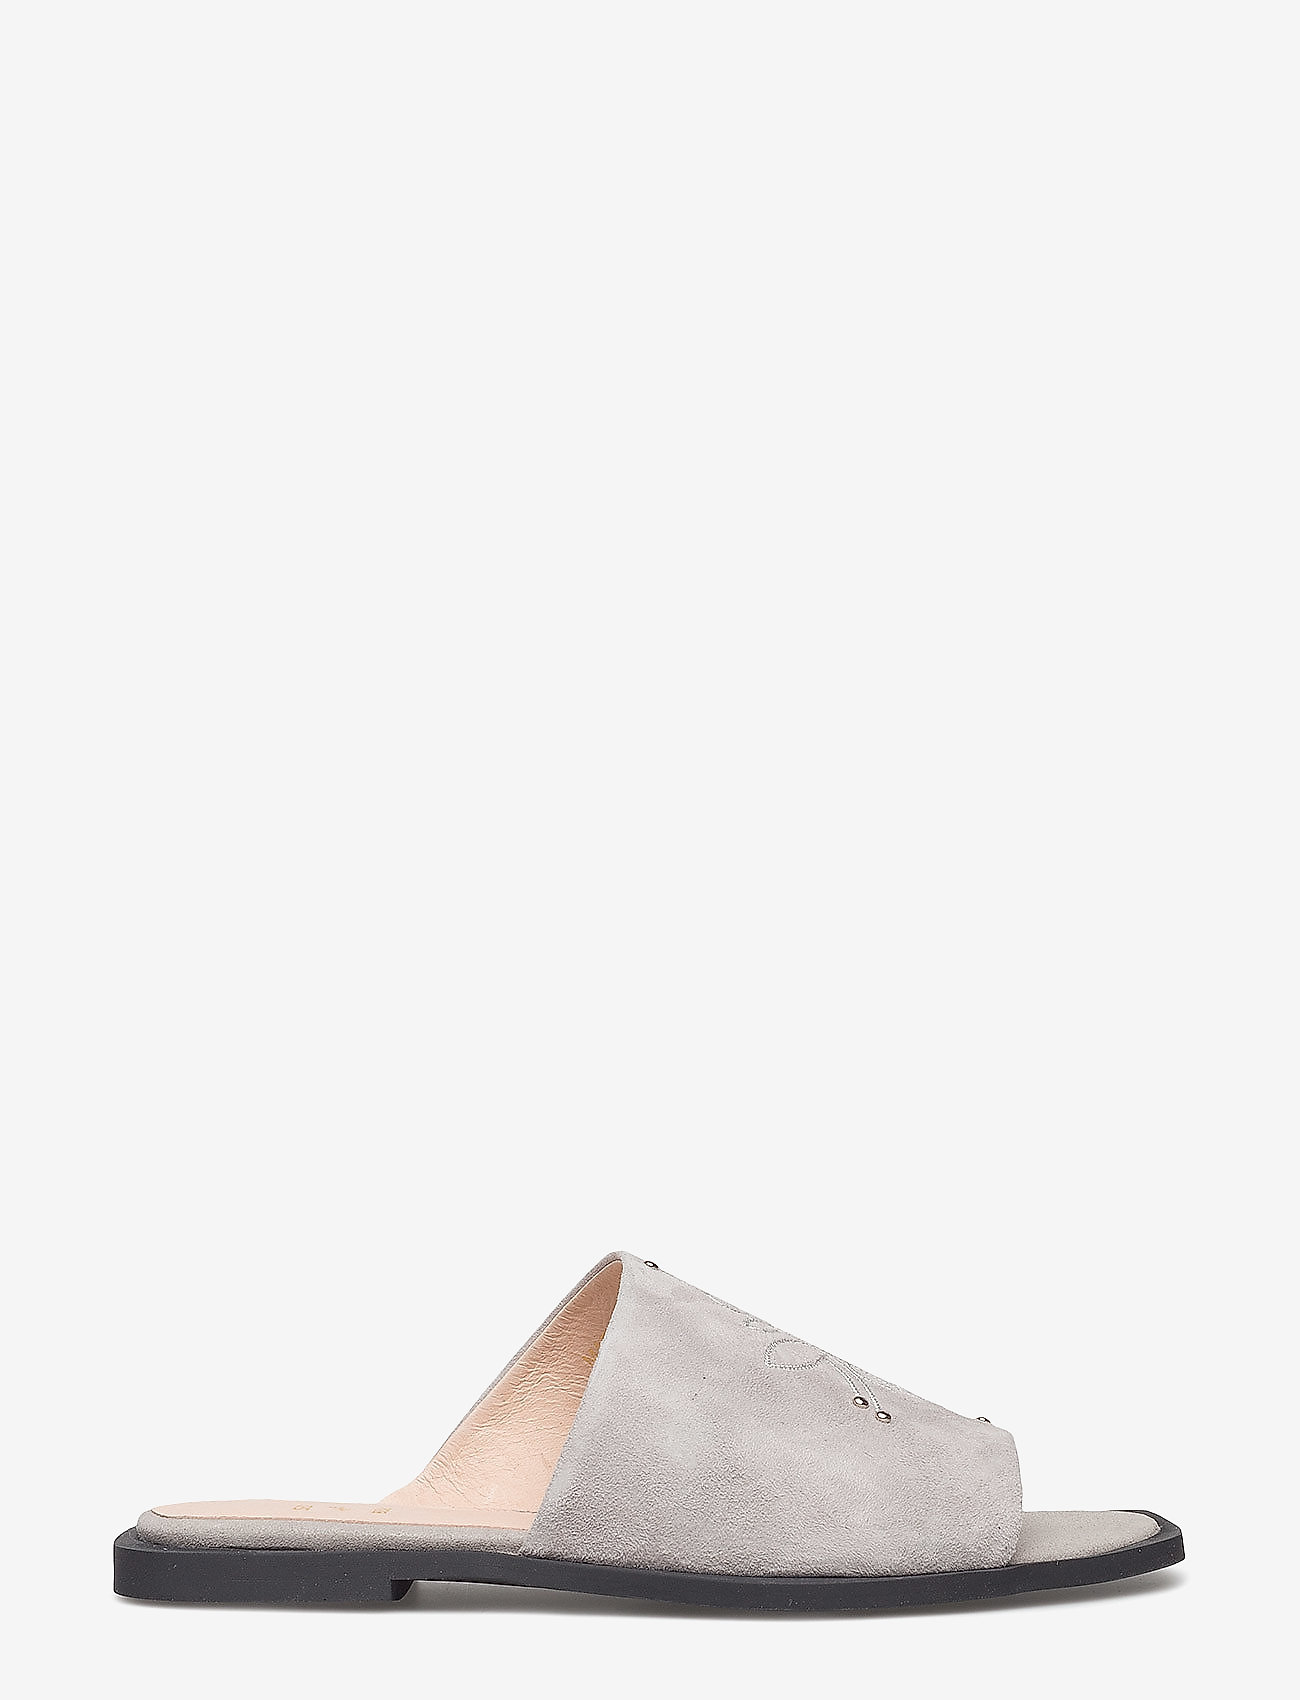 Shoe The Bear - MARCY S - flat sandals - light grey - 1